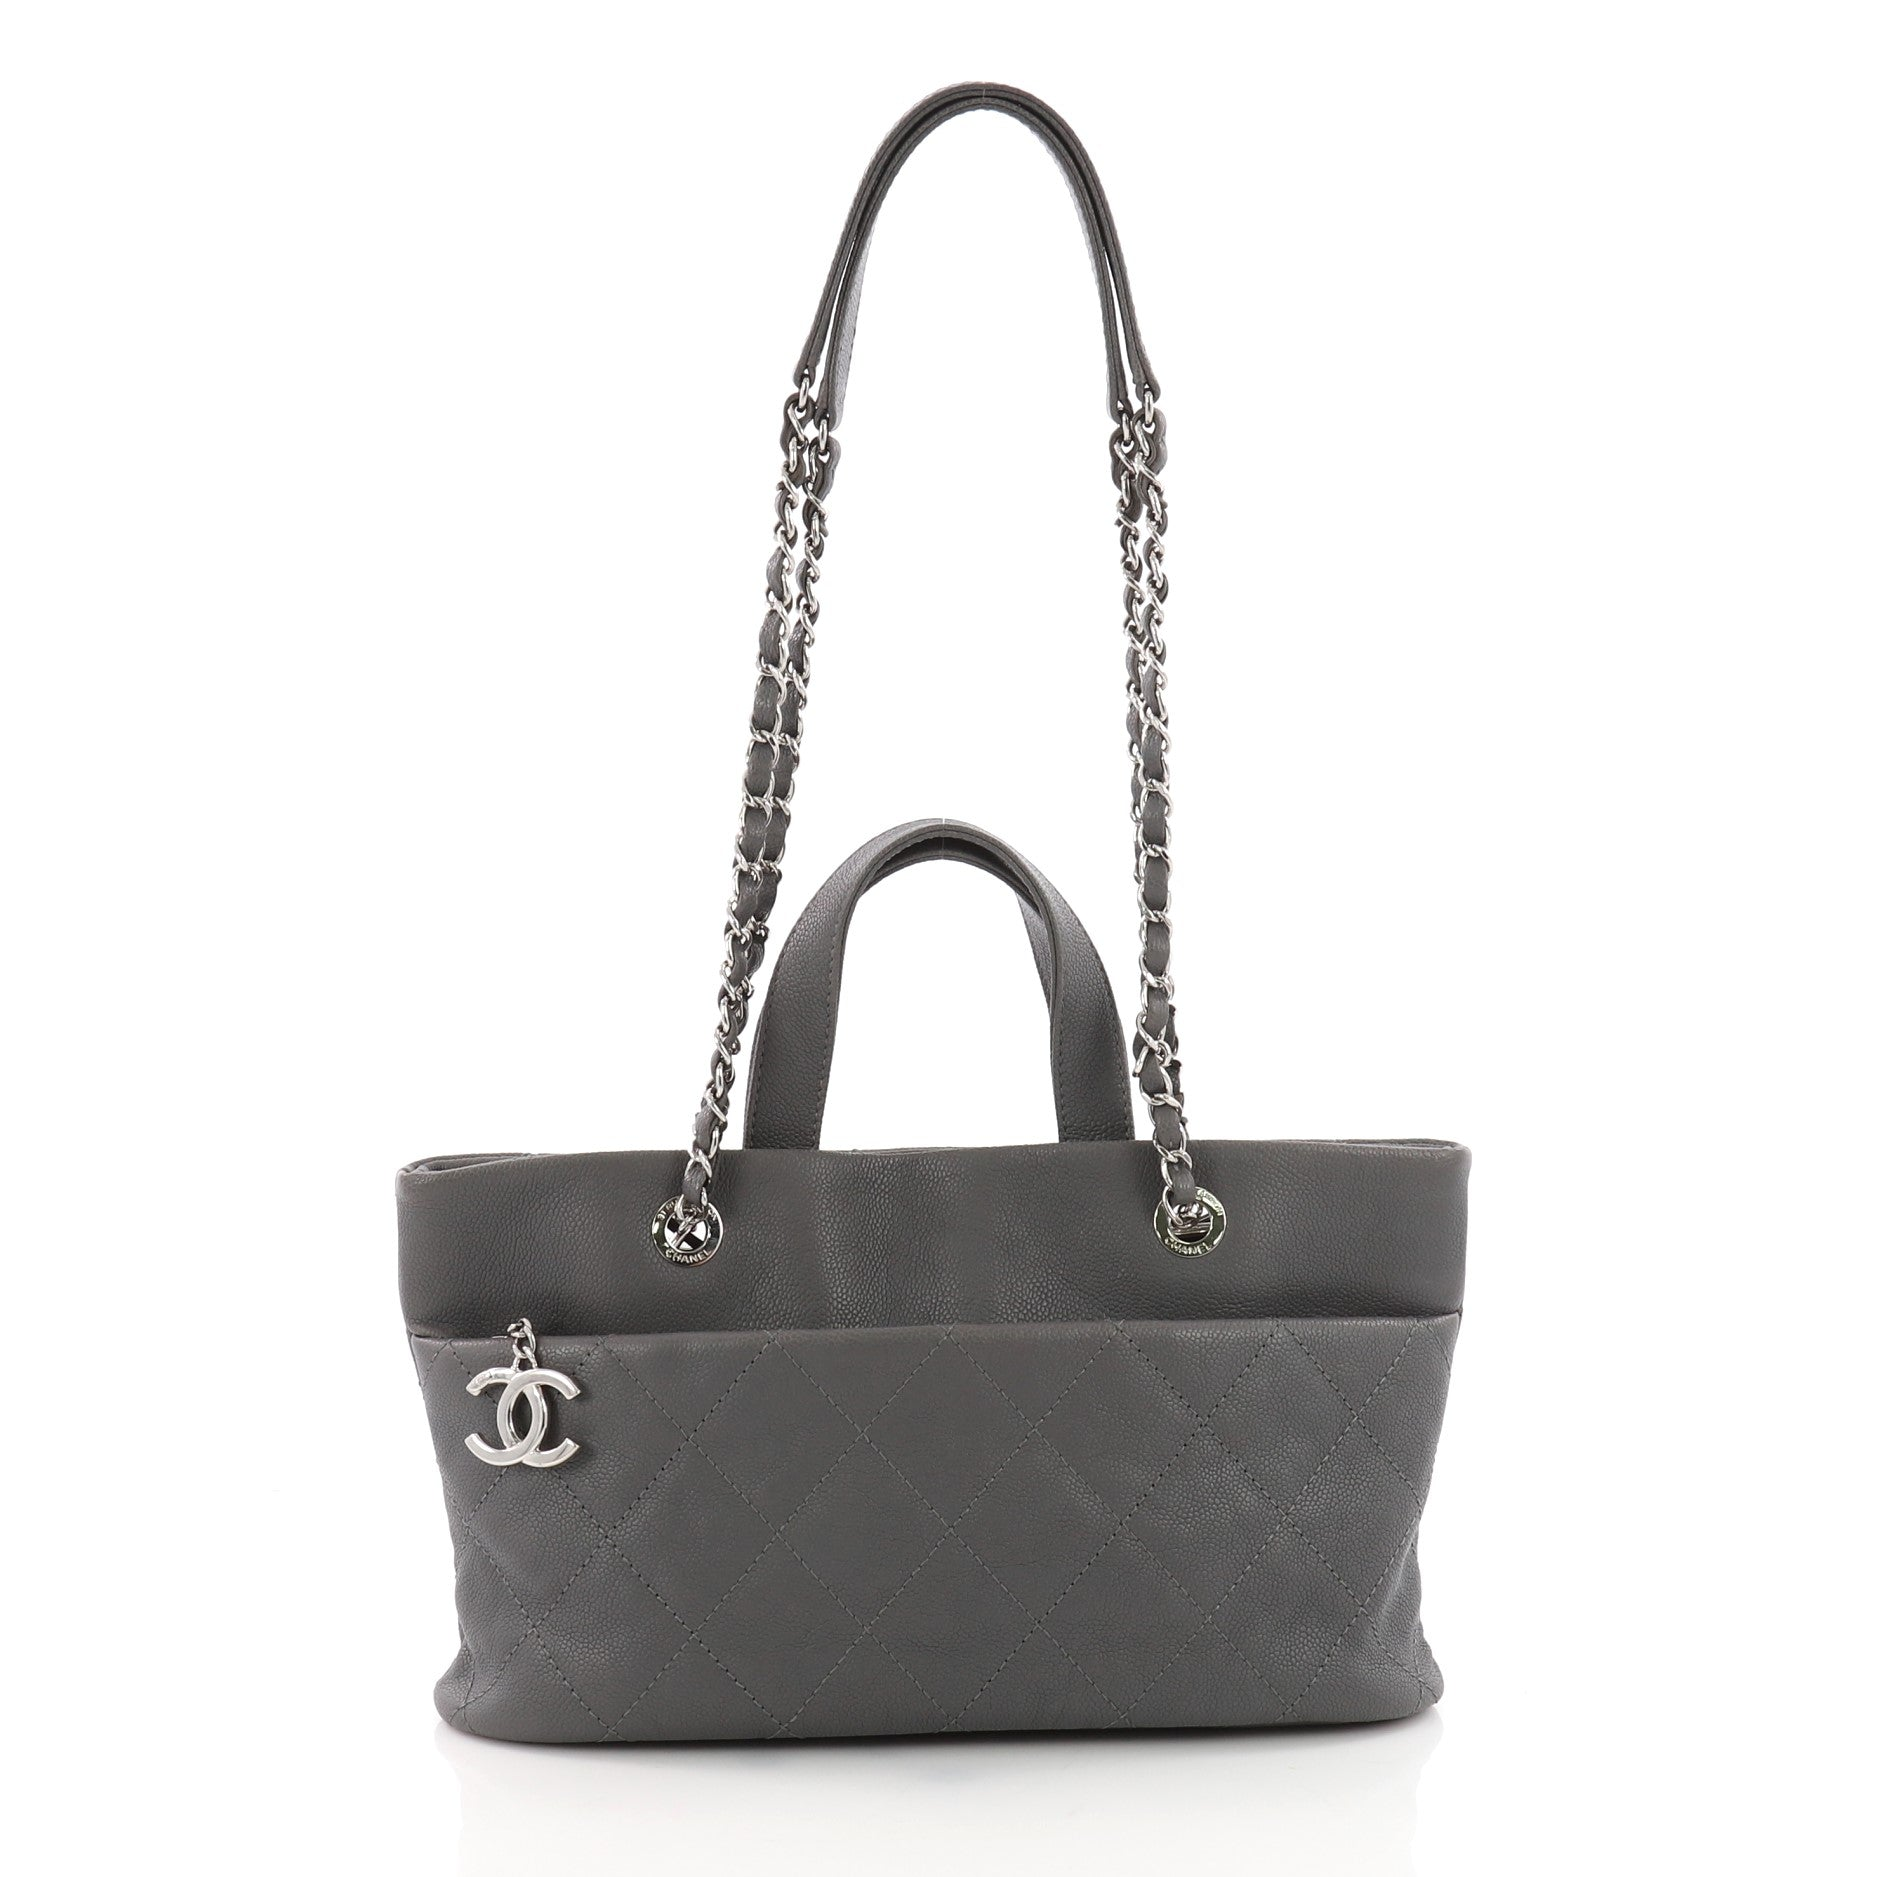 5341890dce69 Chanel Timeless CC Charm Tote Quilted Caviar Large - Rebag ...